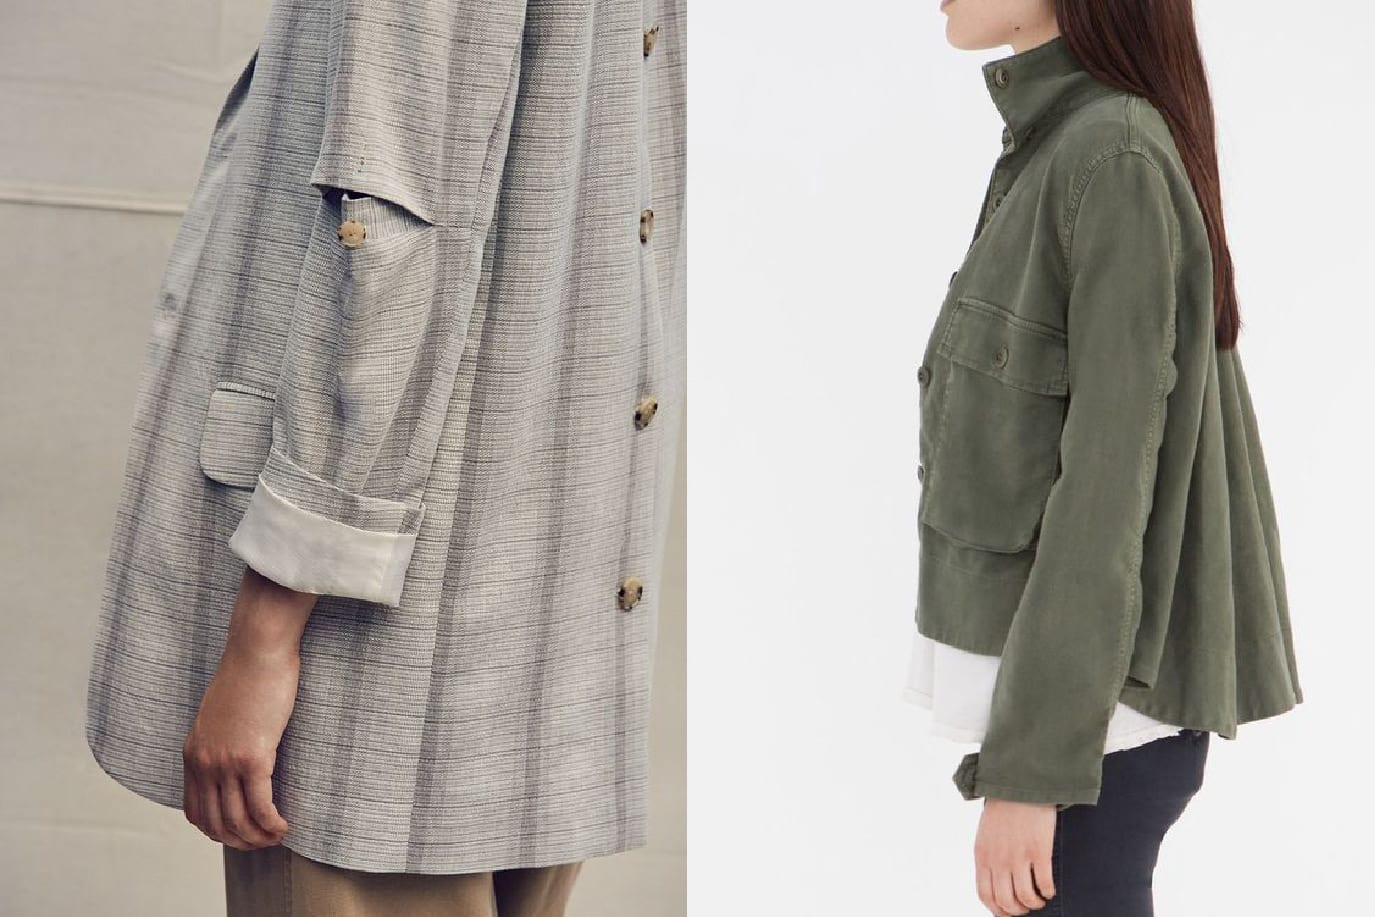 Styling Inspo for the Sienna Maker Jacket // Closet Case Patterns